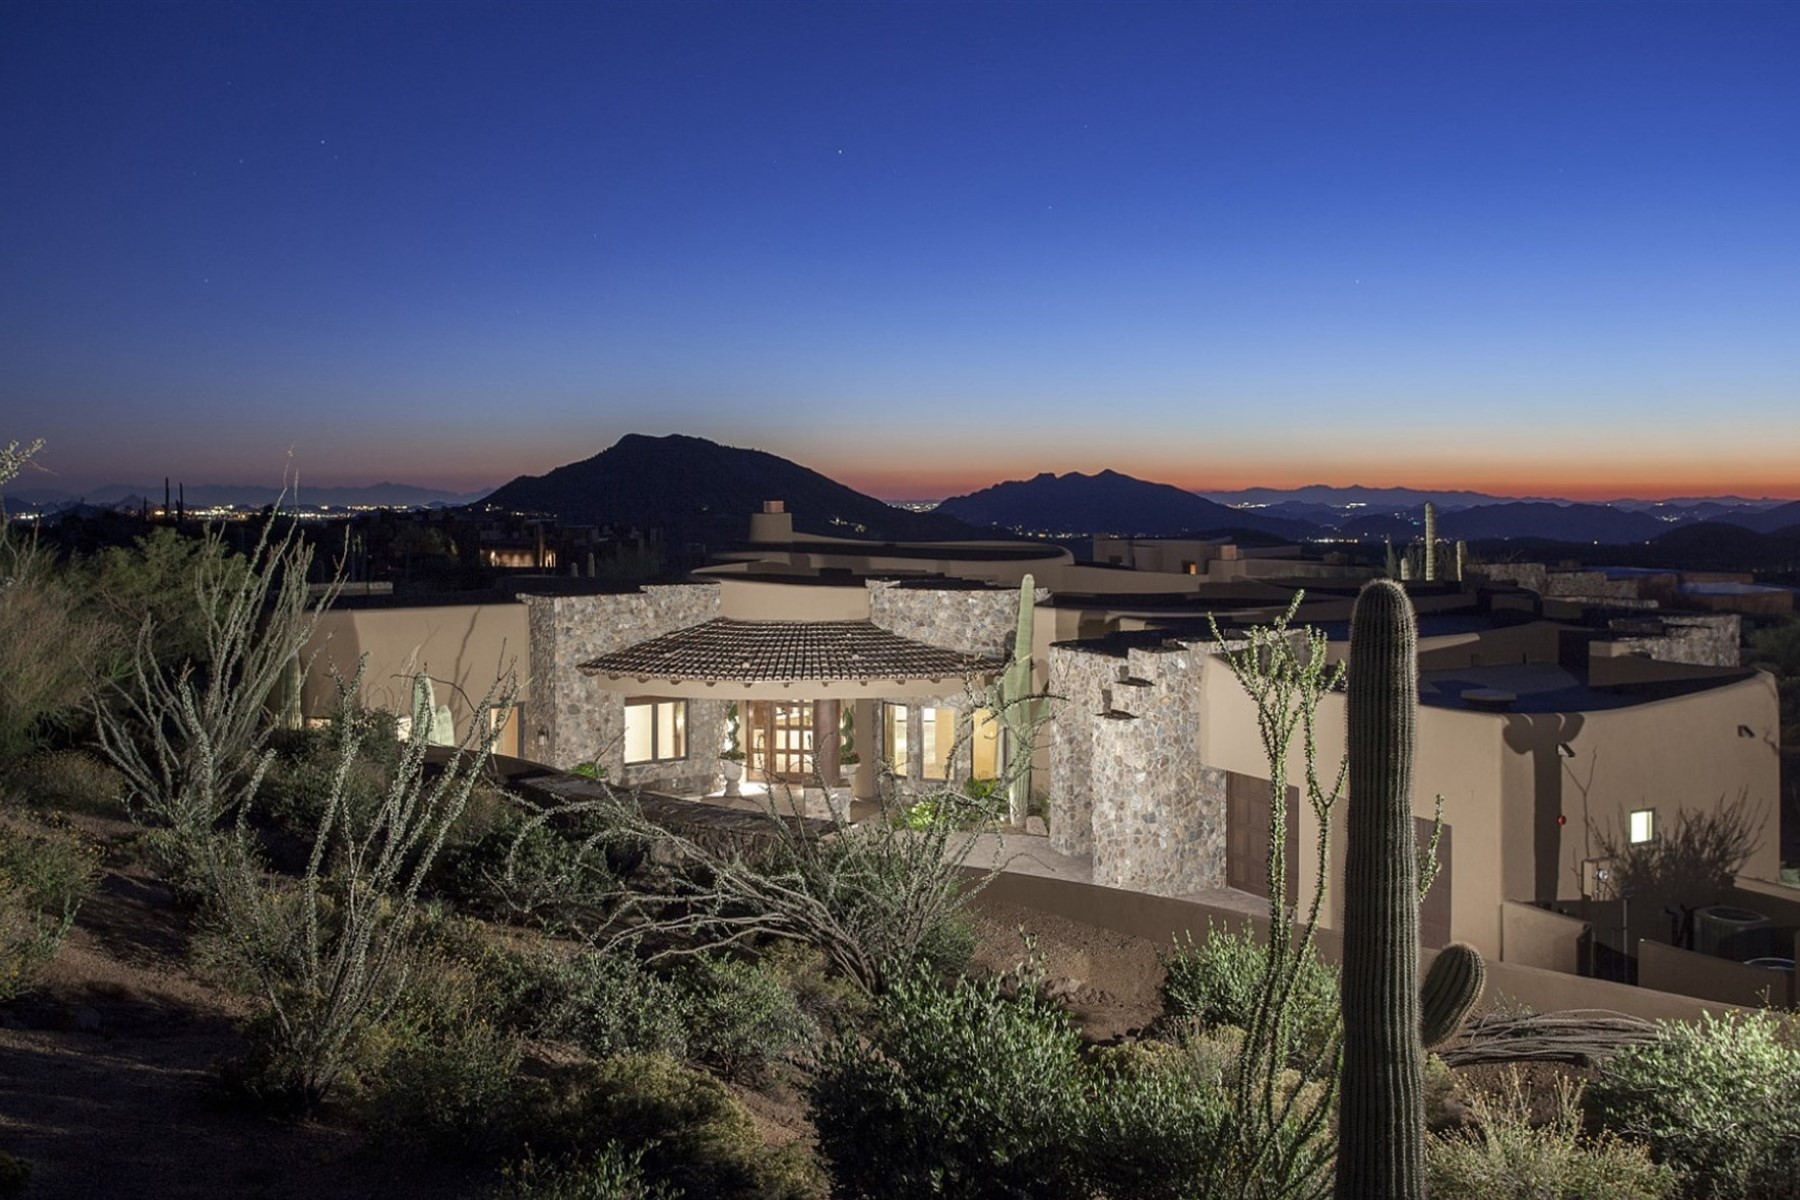 独户住宅 为 销售 在 Incredible Organic New Build In The Exclusive Desert Mountain Community 10233 N Relic Rock Rd Scottsdale, 亚利桑那州 85262 美国